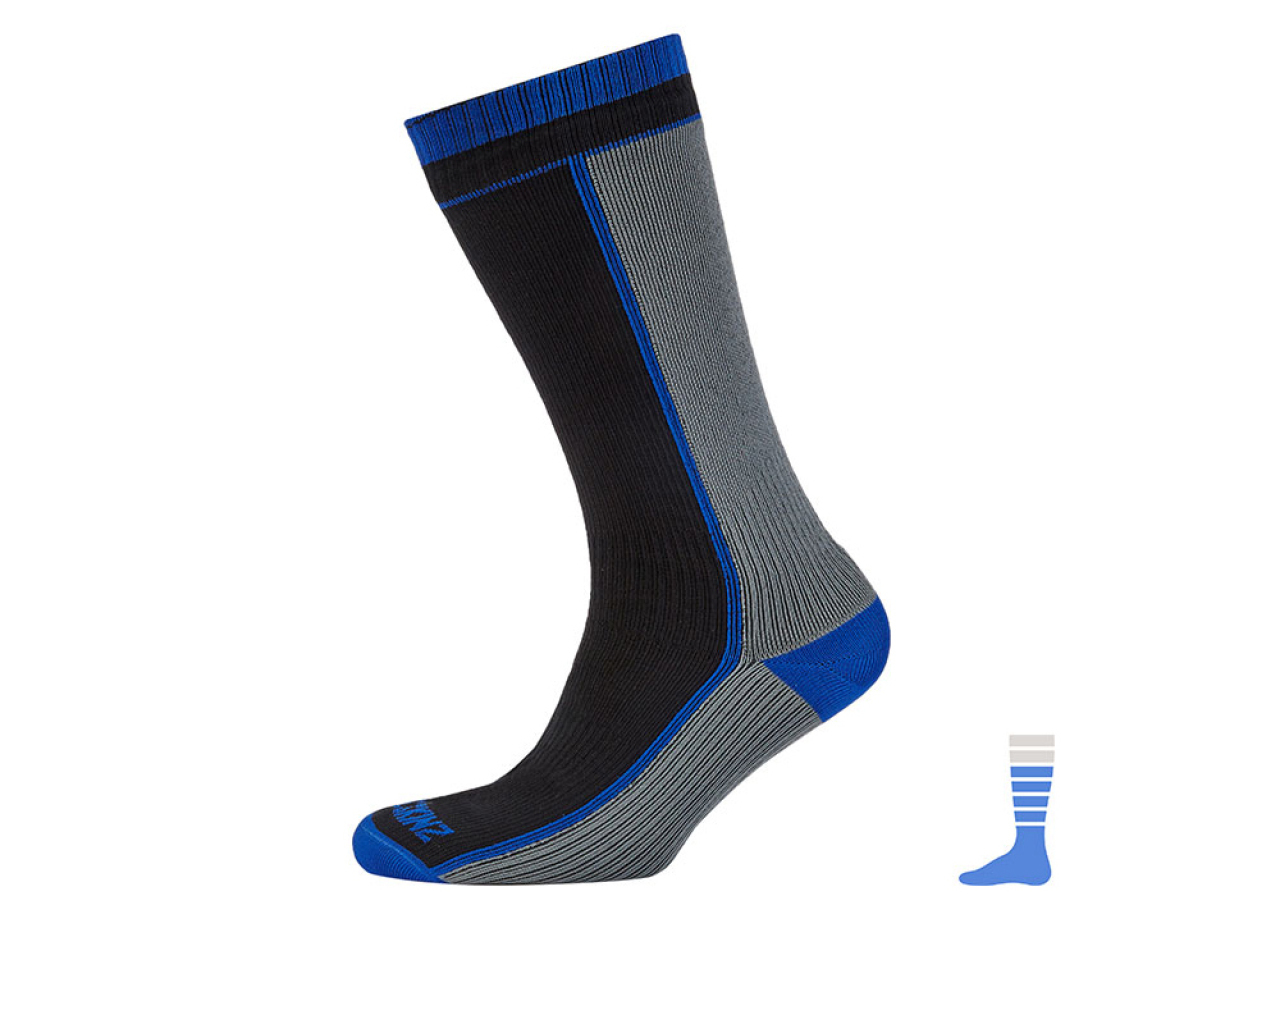 15703_sealskinz_mid_weight_mid_length_cycling_socks.jpg